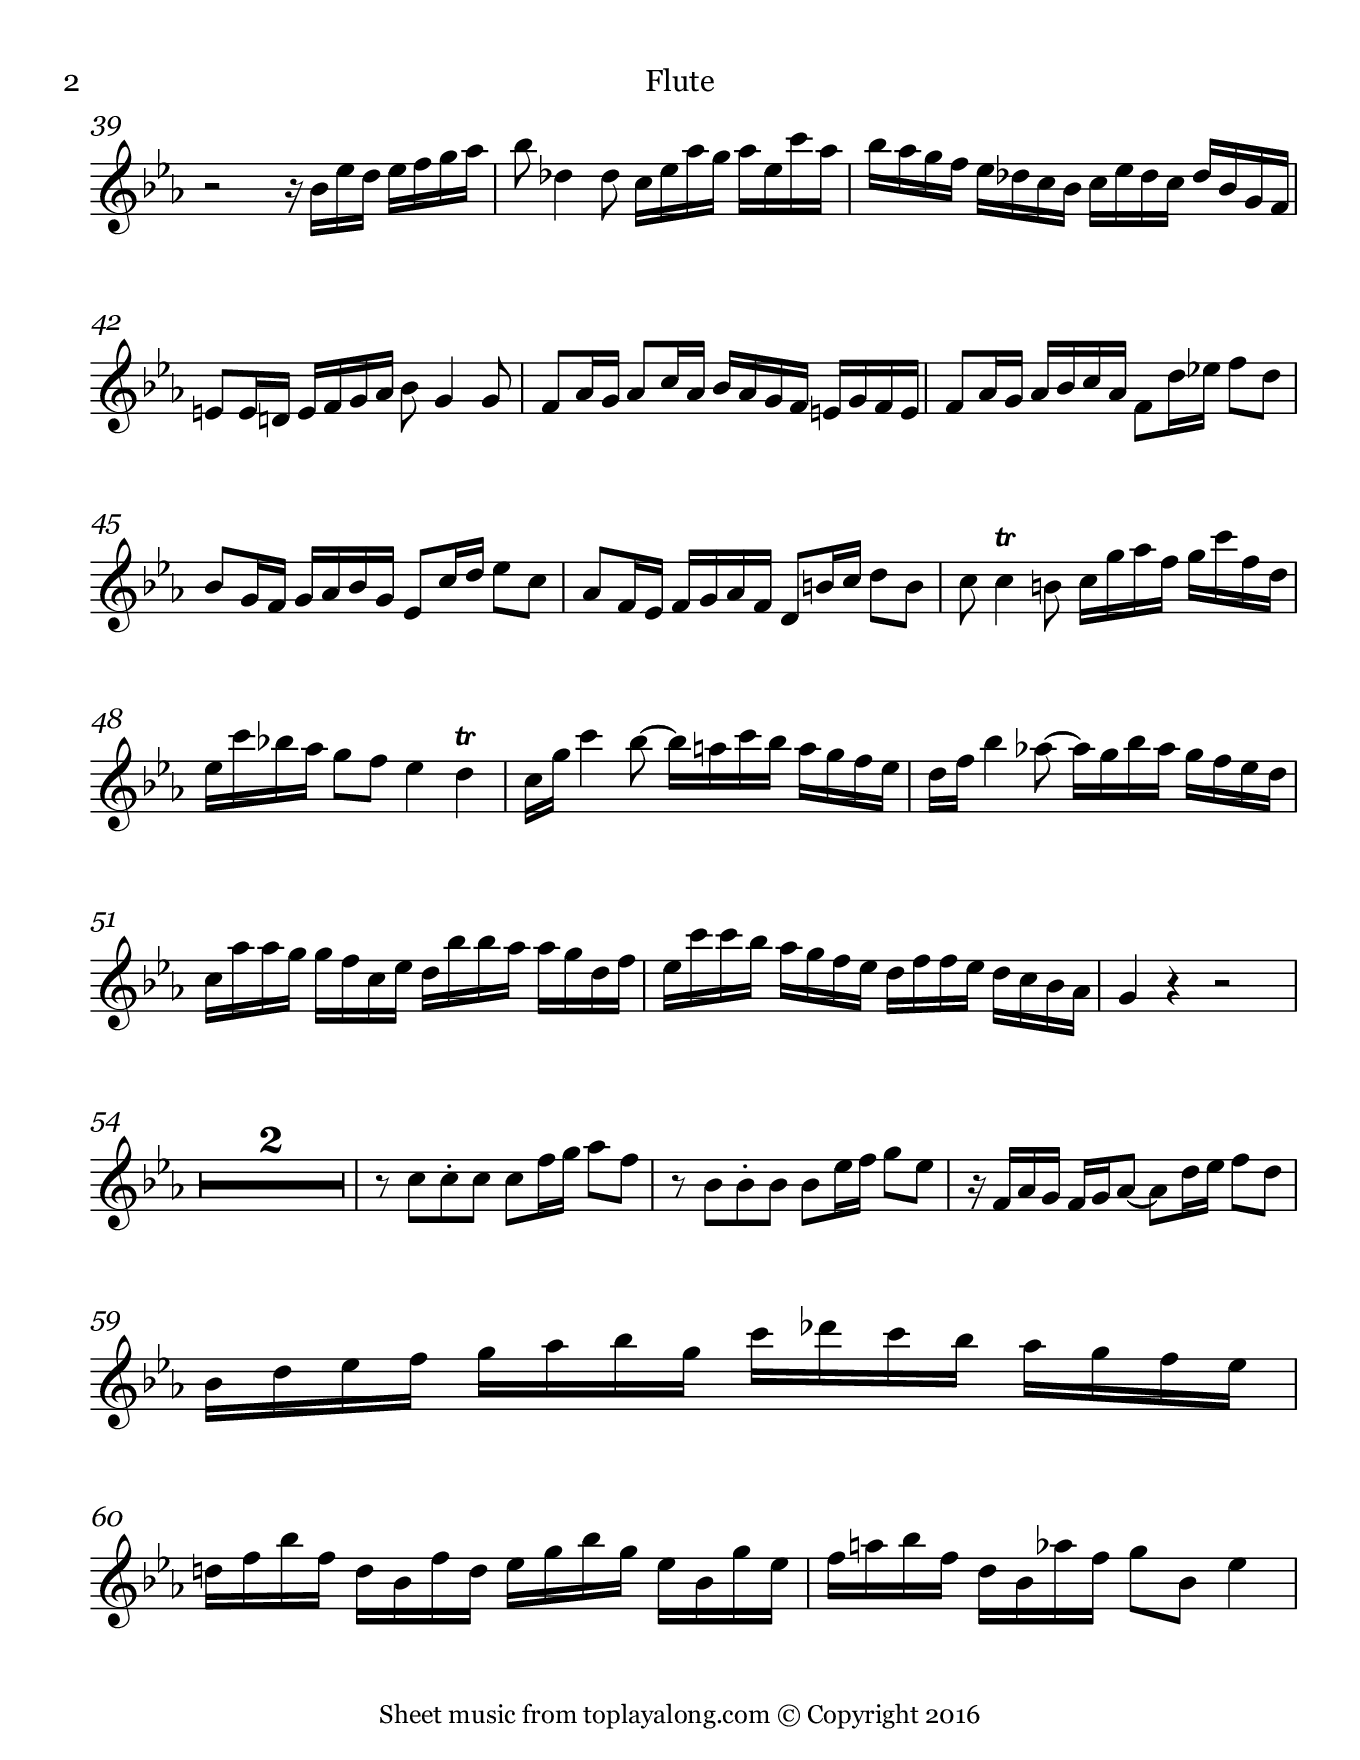 Flute Sonata BWV 1031 (I. Allegro) by J. S. Bach. Sheet music for Flute, page 2.